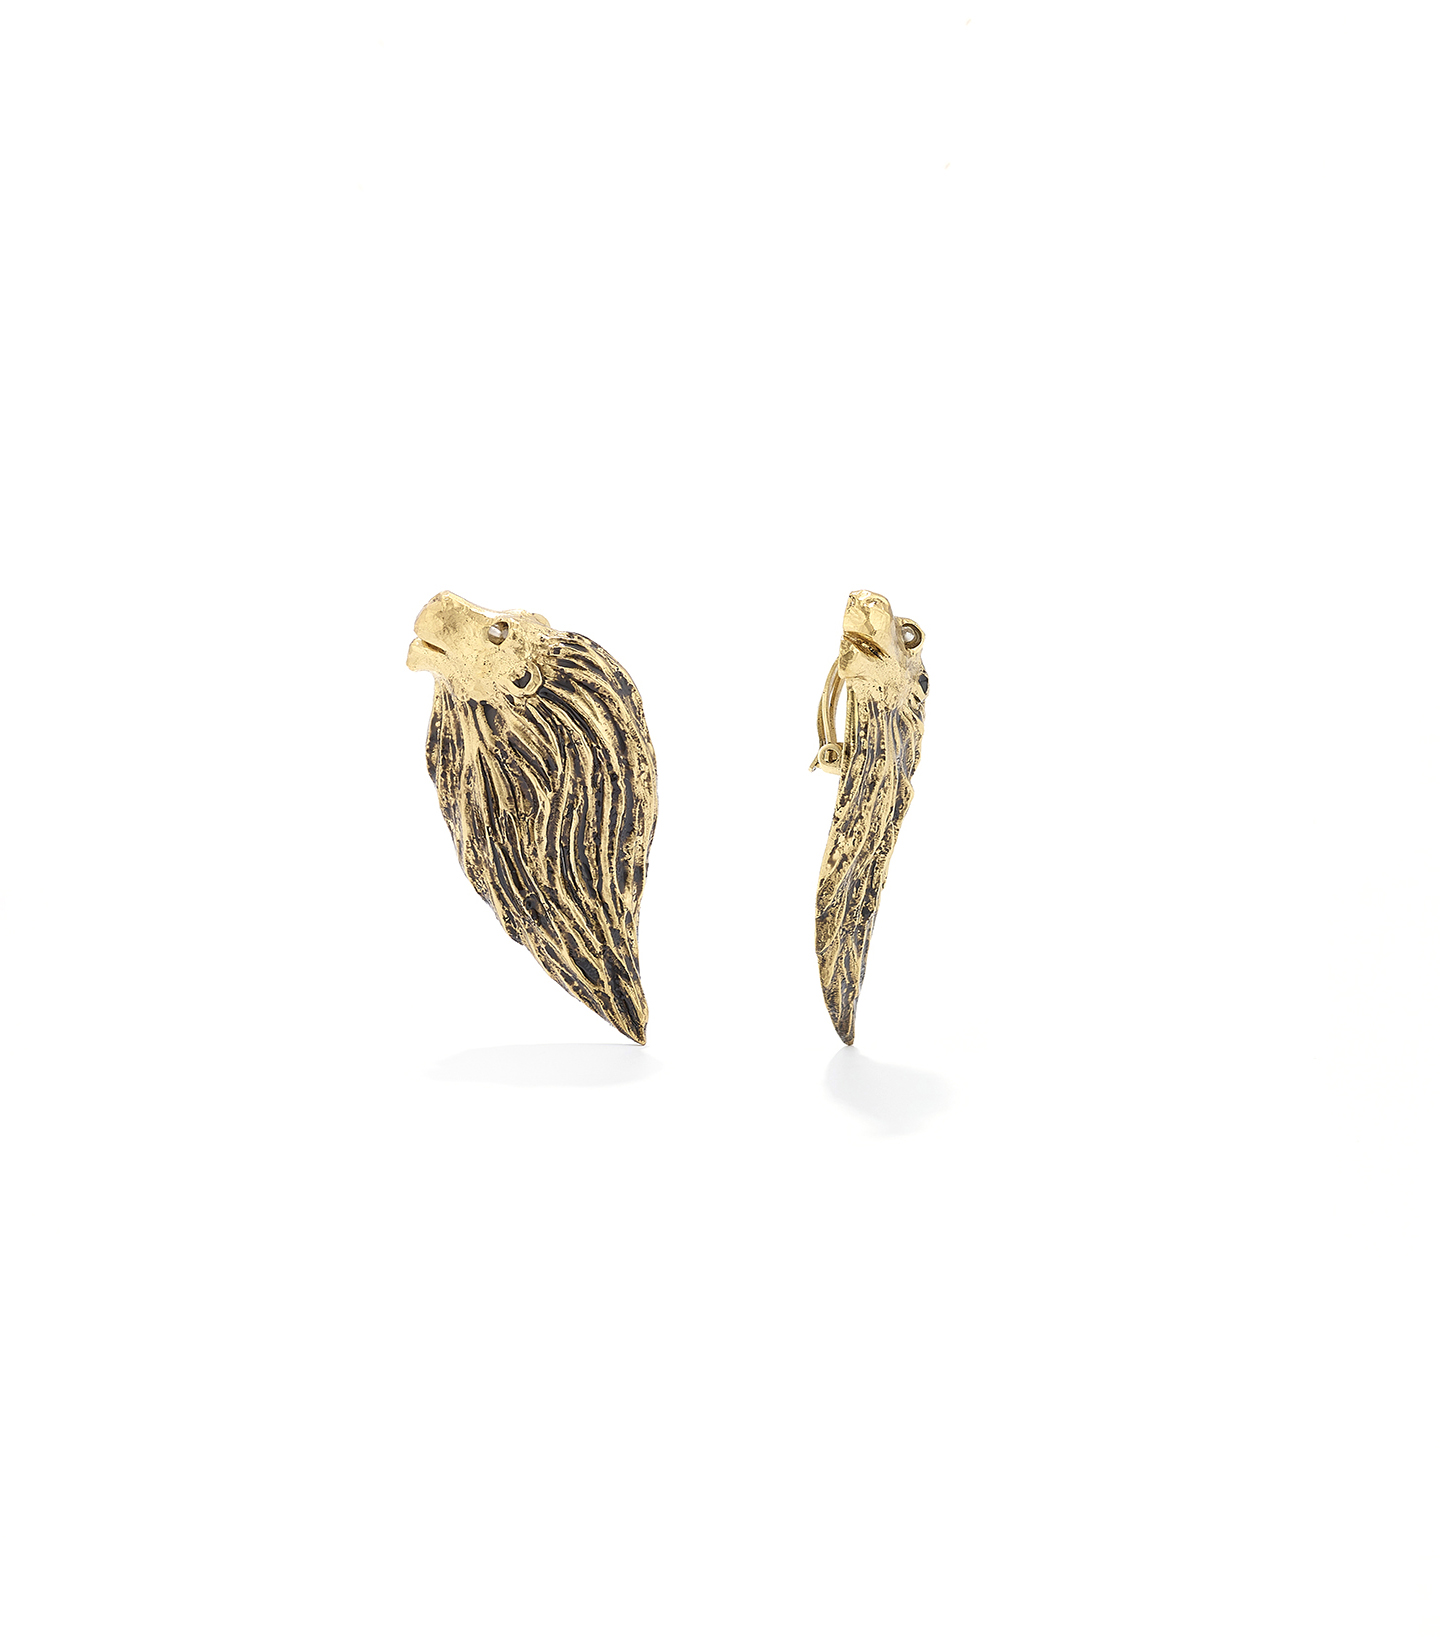 Goossens HARUMI KLOSSOWSKA DE ROLA lion earrings Natural Rock Crystal V1